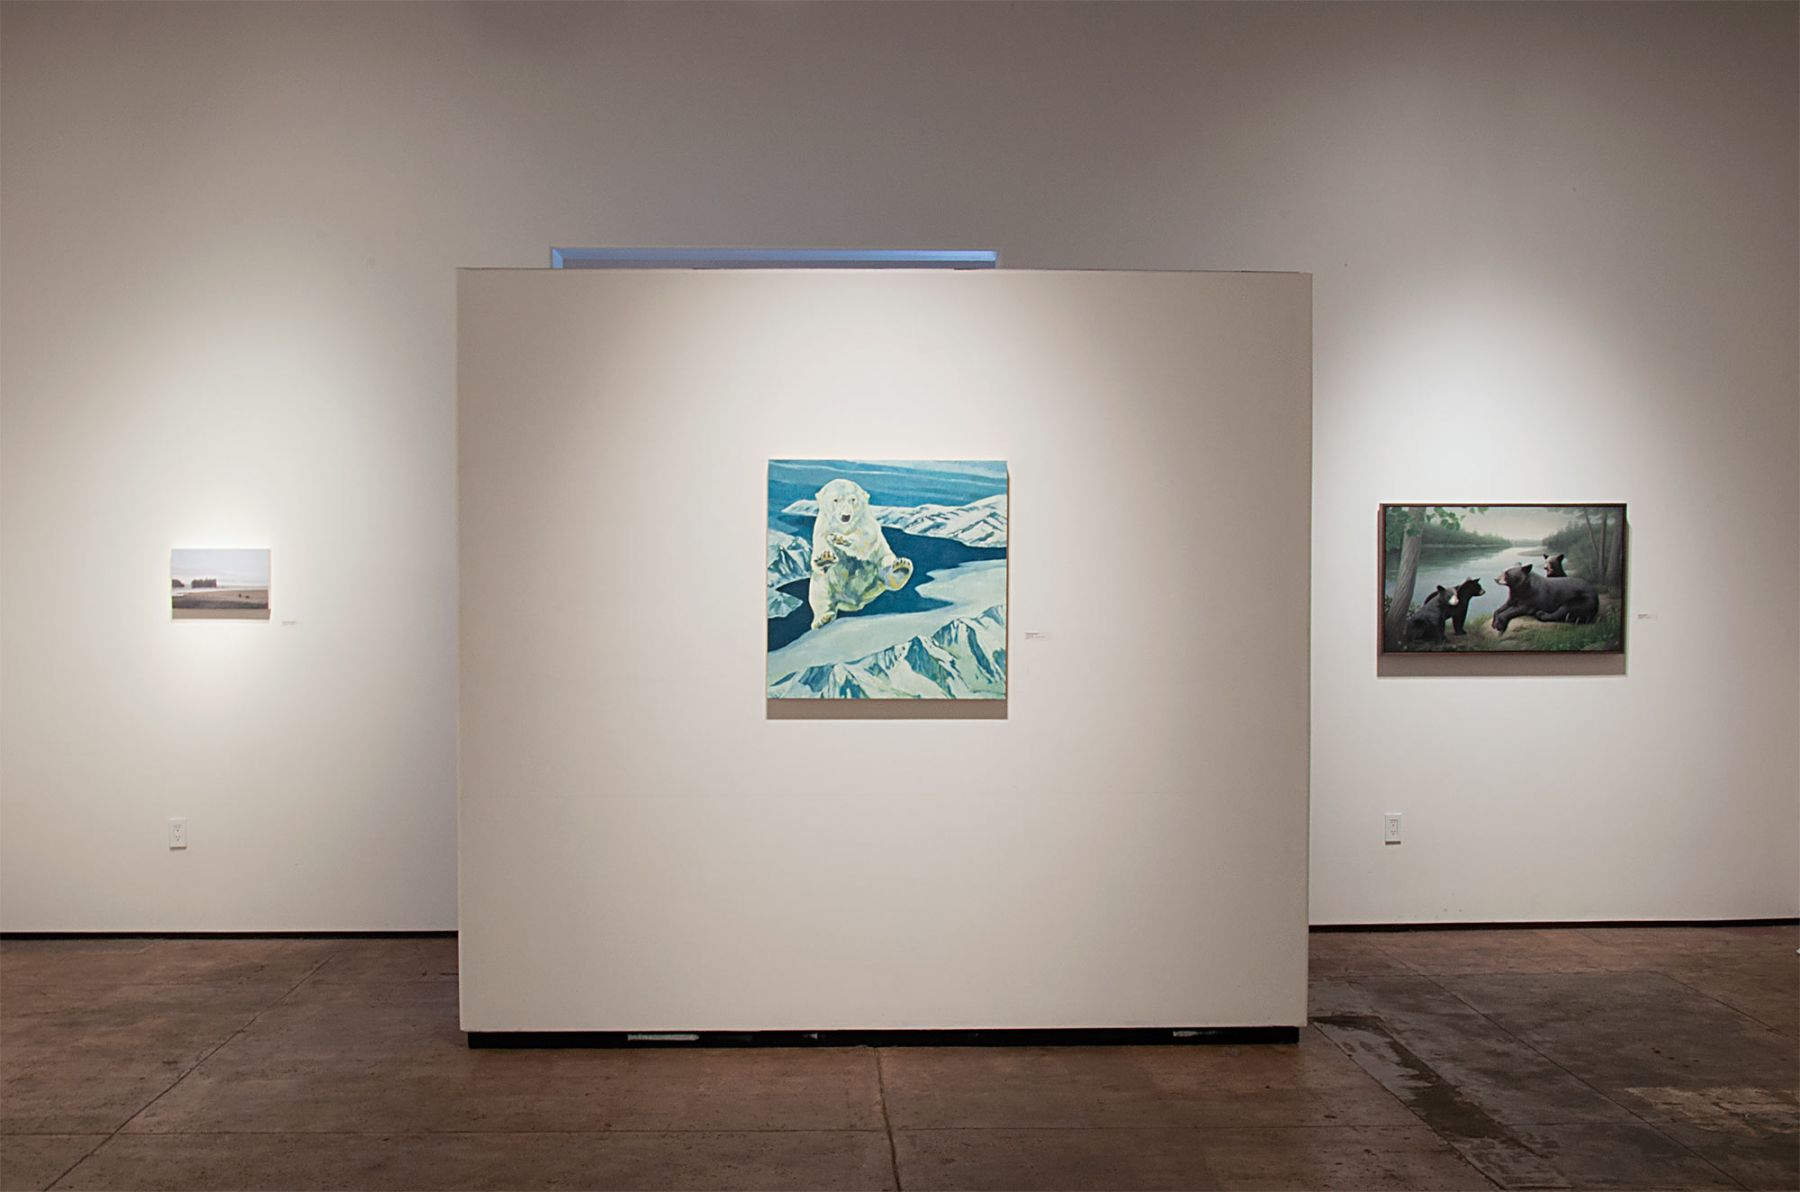 Contemporary Bear Area Artists Installation photograph, Pamela Kendall Schiffer, Nicole Strasburg, Susan McDonnell